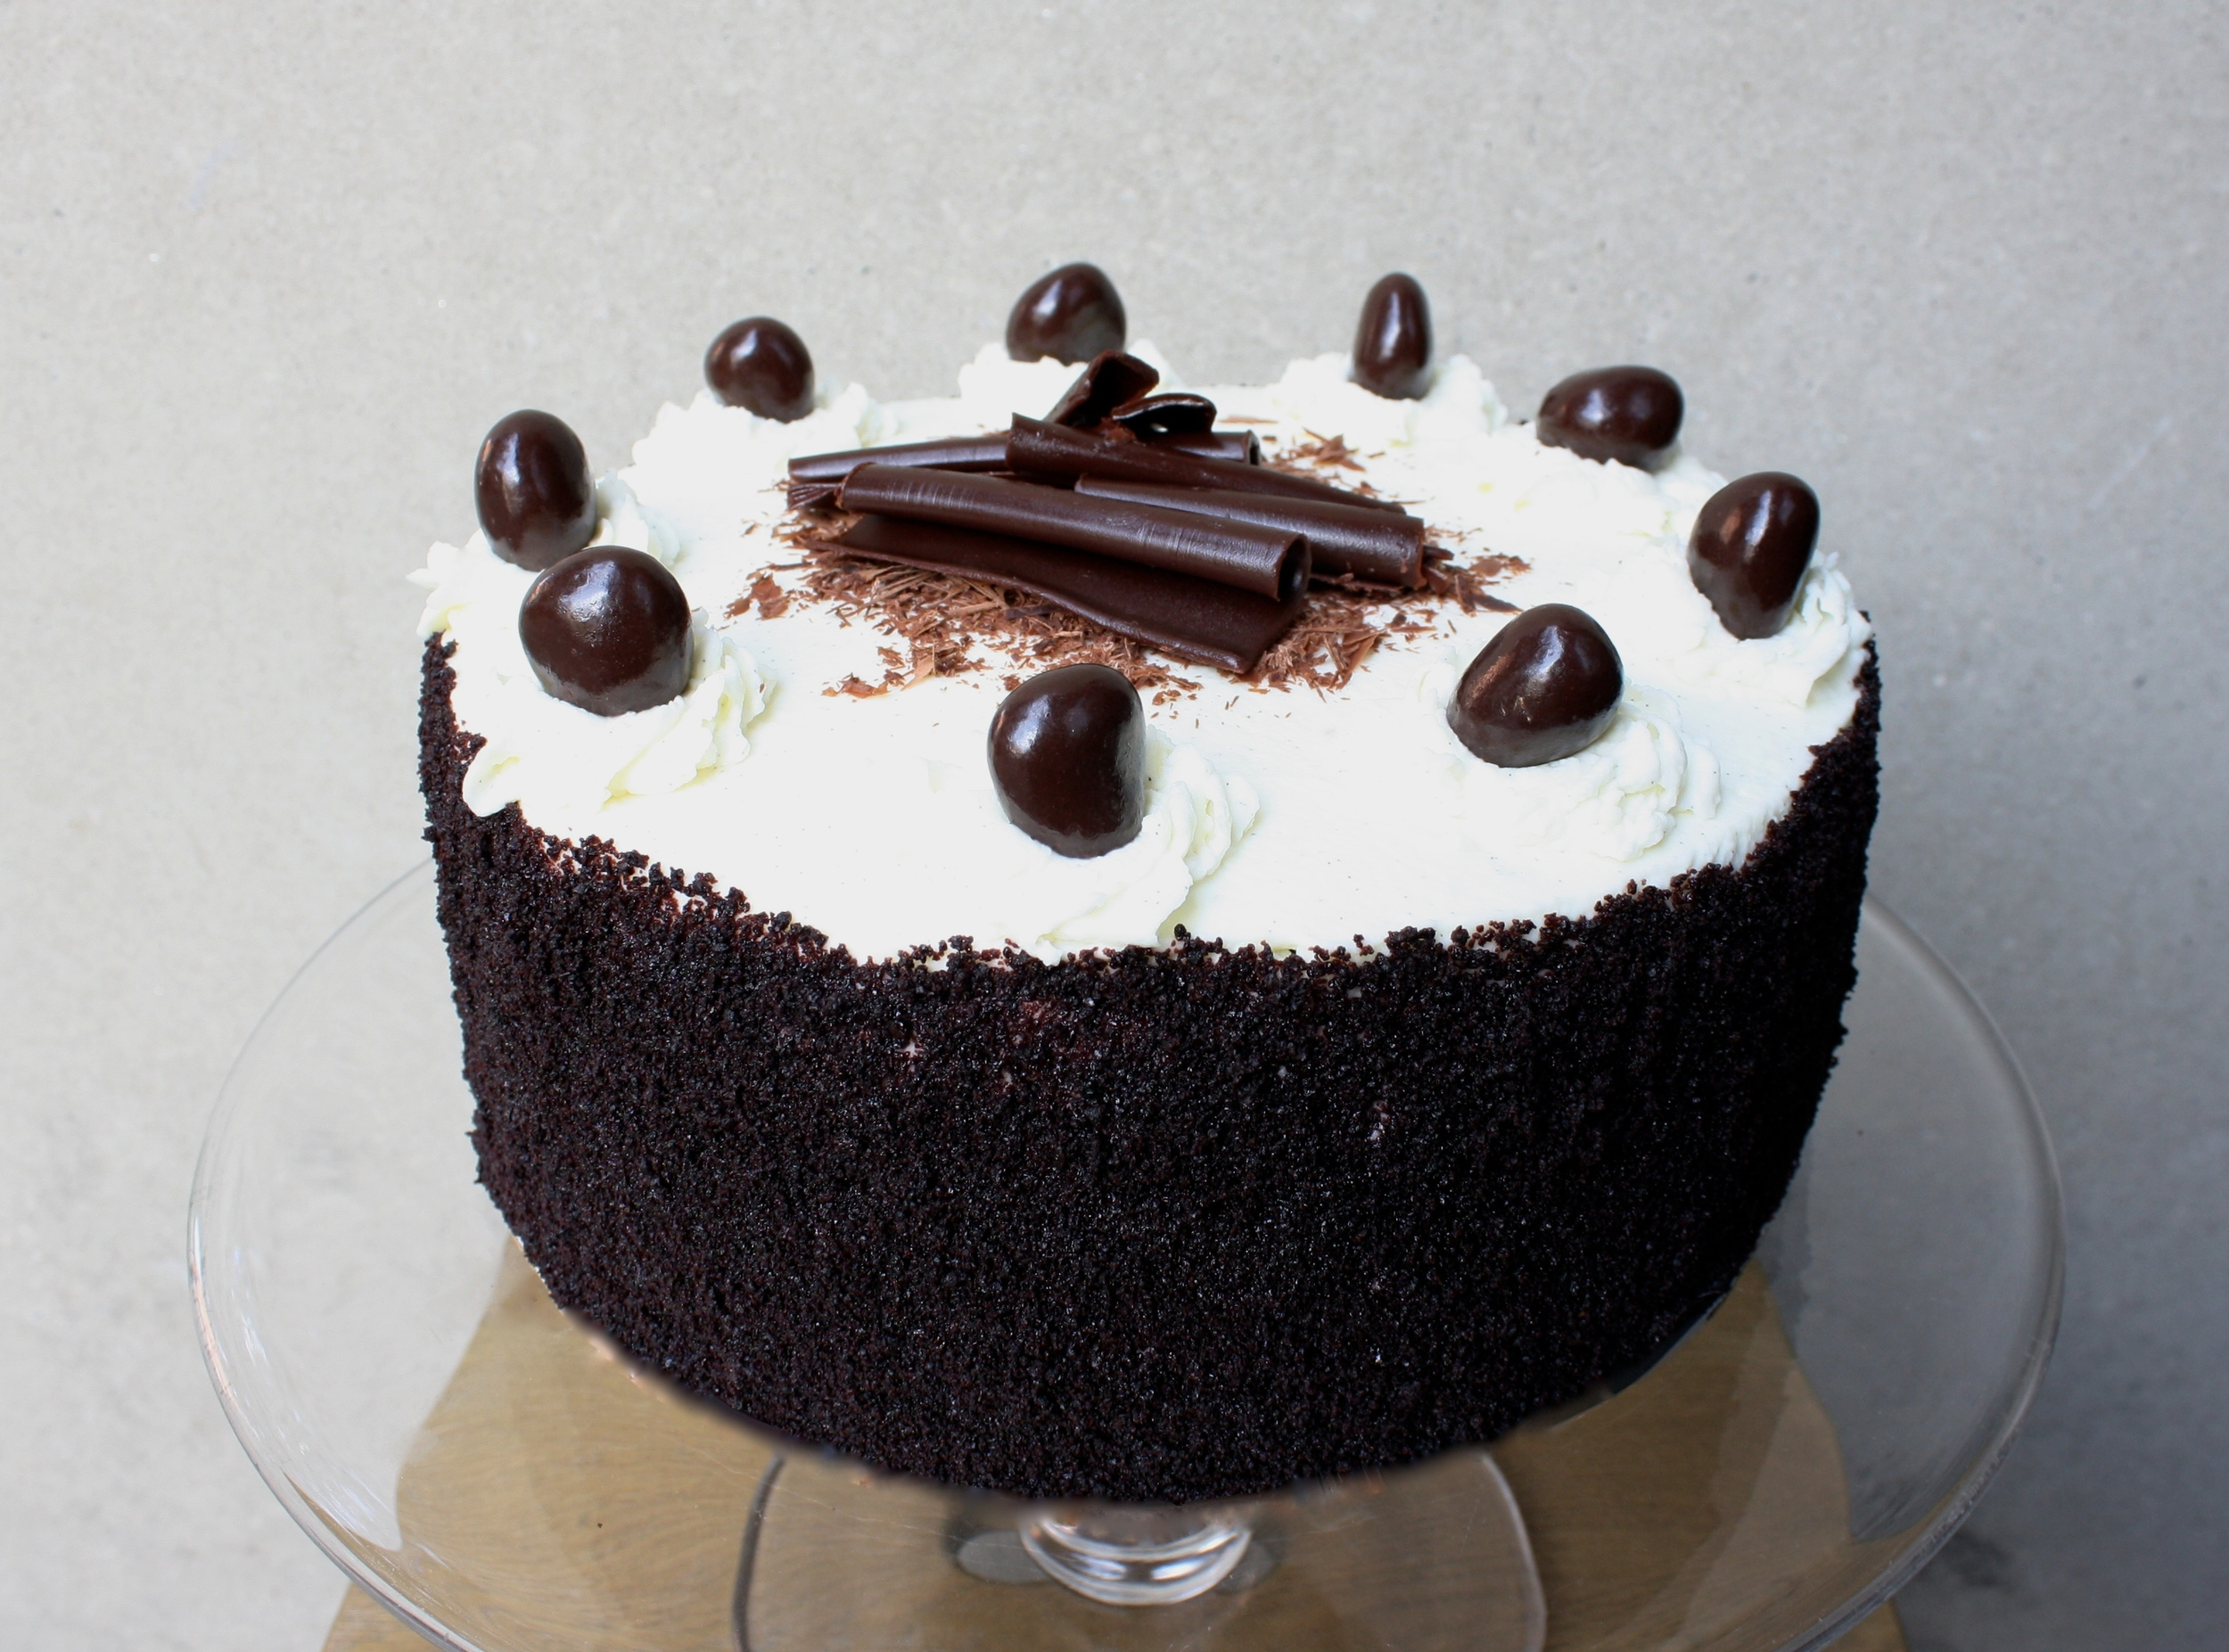 Black Forest*  Rich chocolate cake soaked in cherry liqueur and layered with brandied cherries, iced with homemade whipped cream, and finished with chocolate cake crumbs, chocolate-covered cherries, and dark chocolate curls